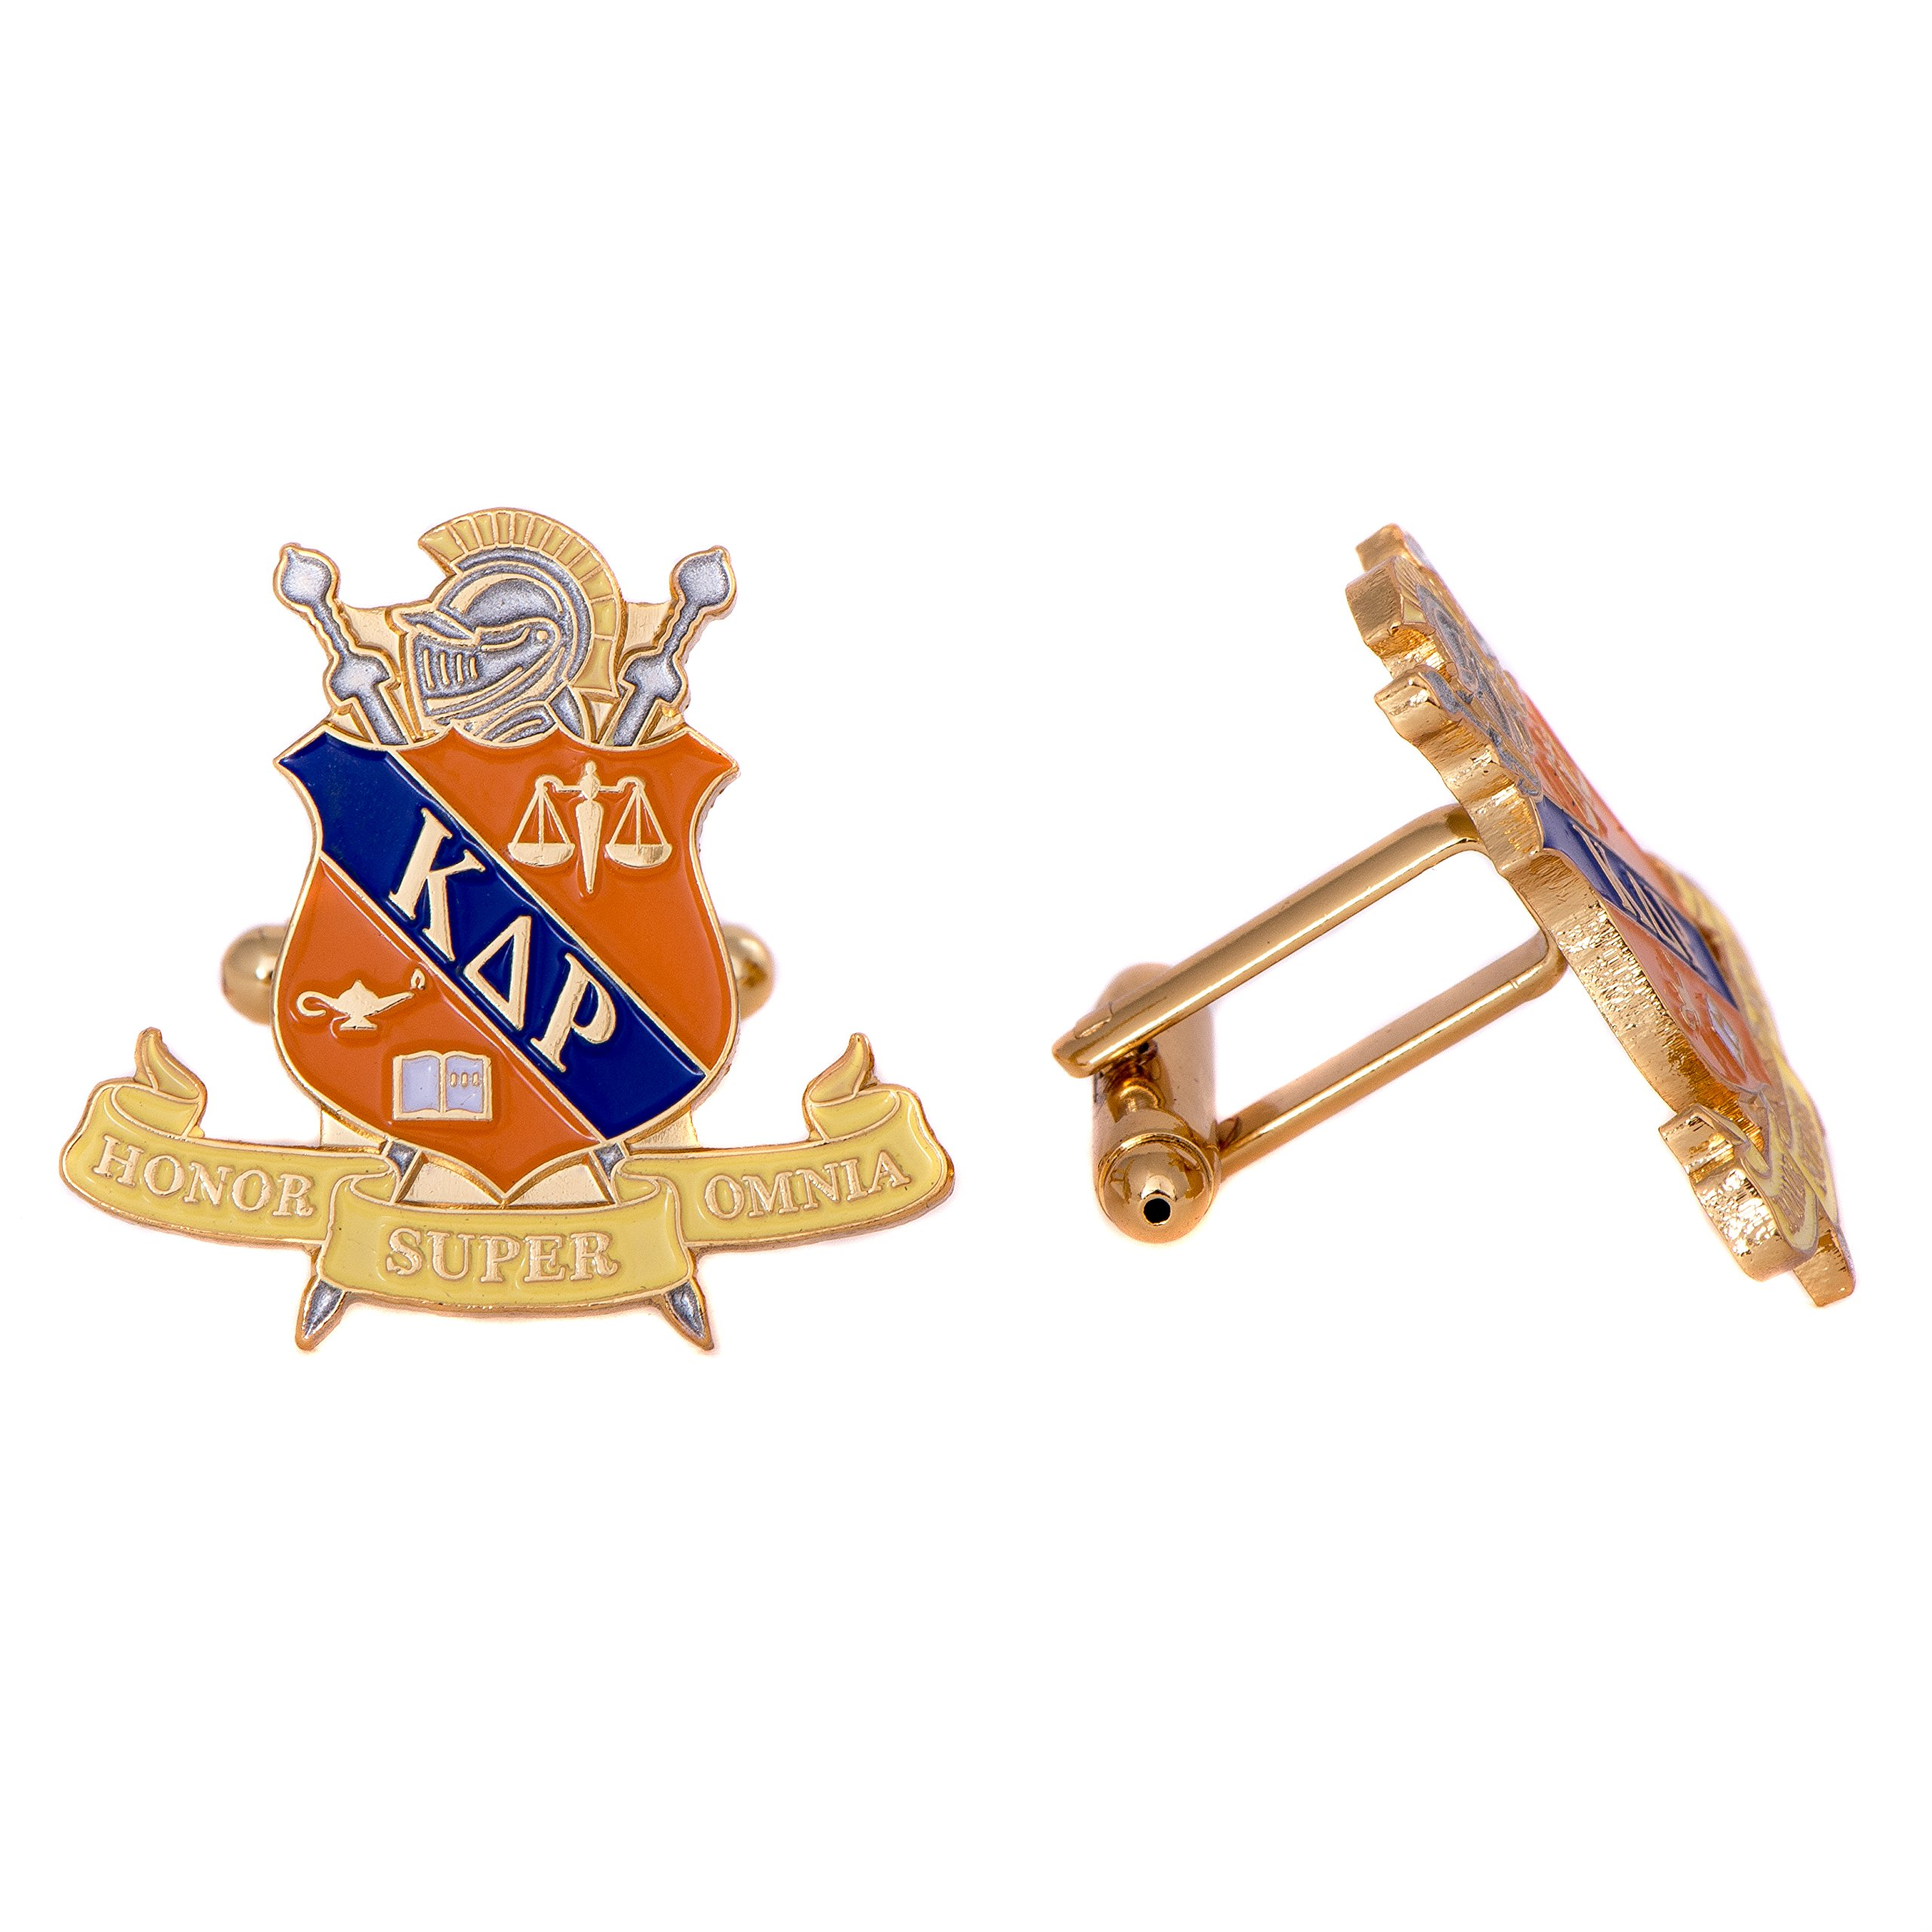 Desert Cactus Kappa Delta Rho Fraternity Crest Cufflinks Greek Formal Wear Blazer Jacket KDR